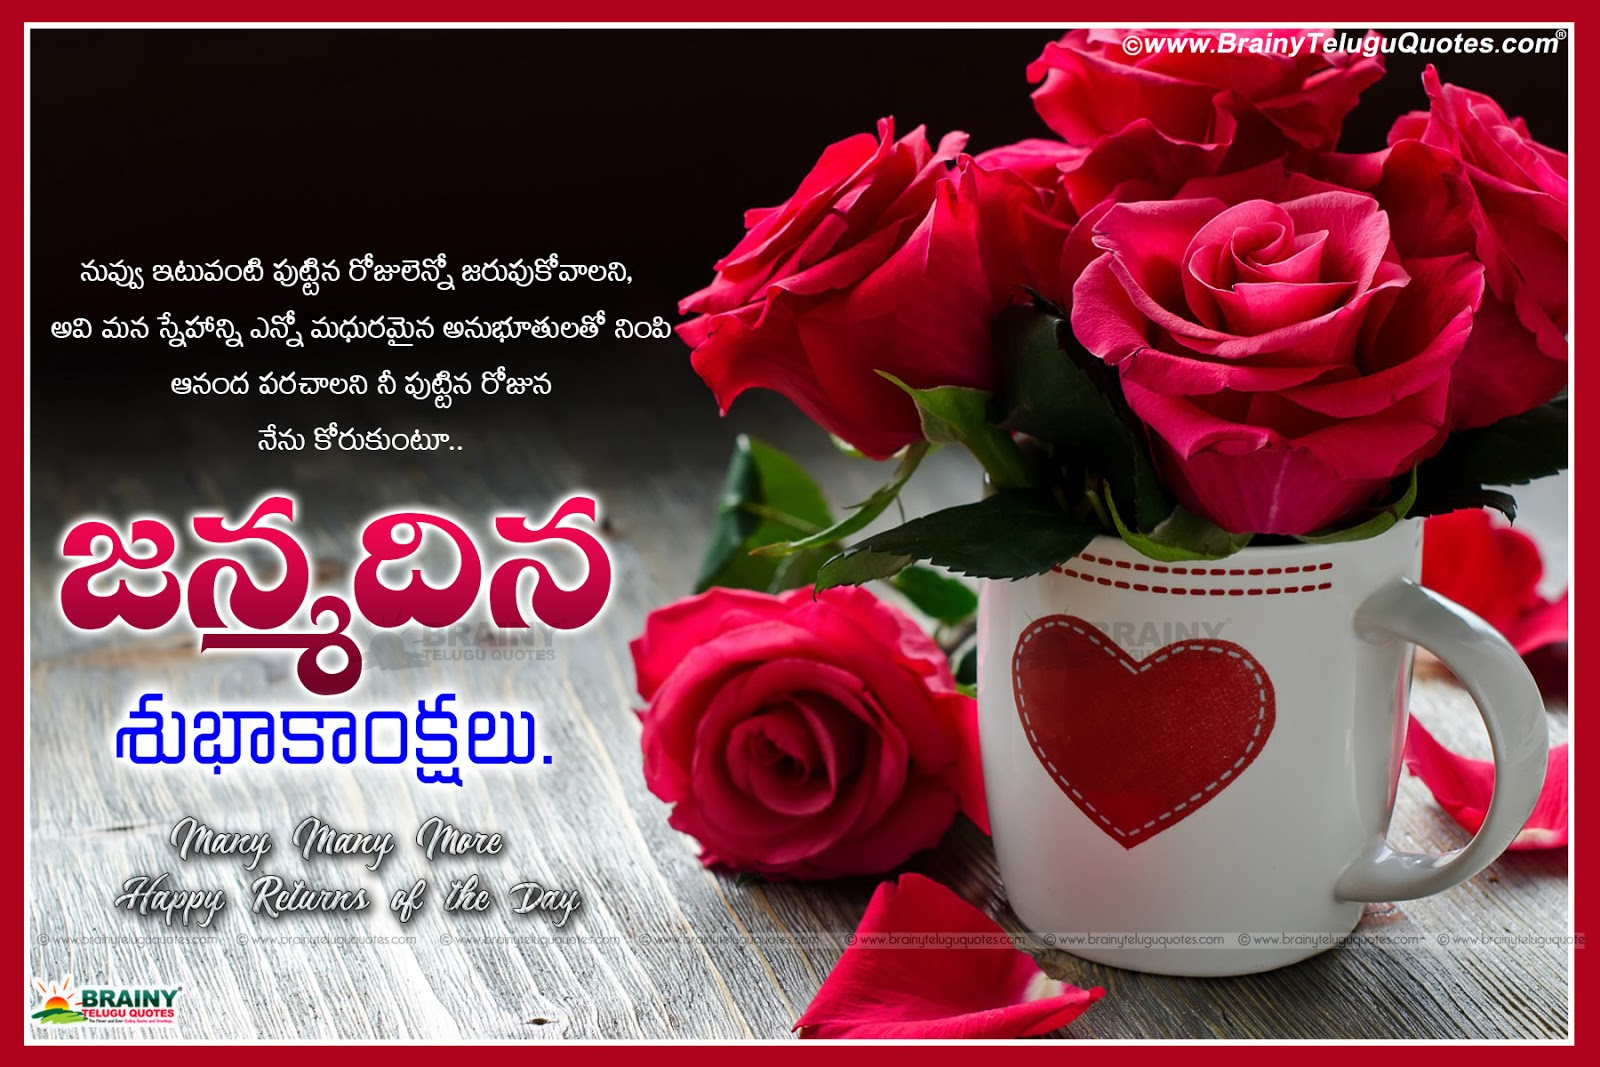 Telugu Happy Birthday Party Wishes Greetings Sms With Telugu